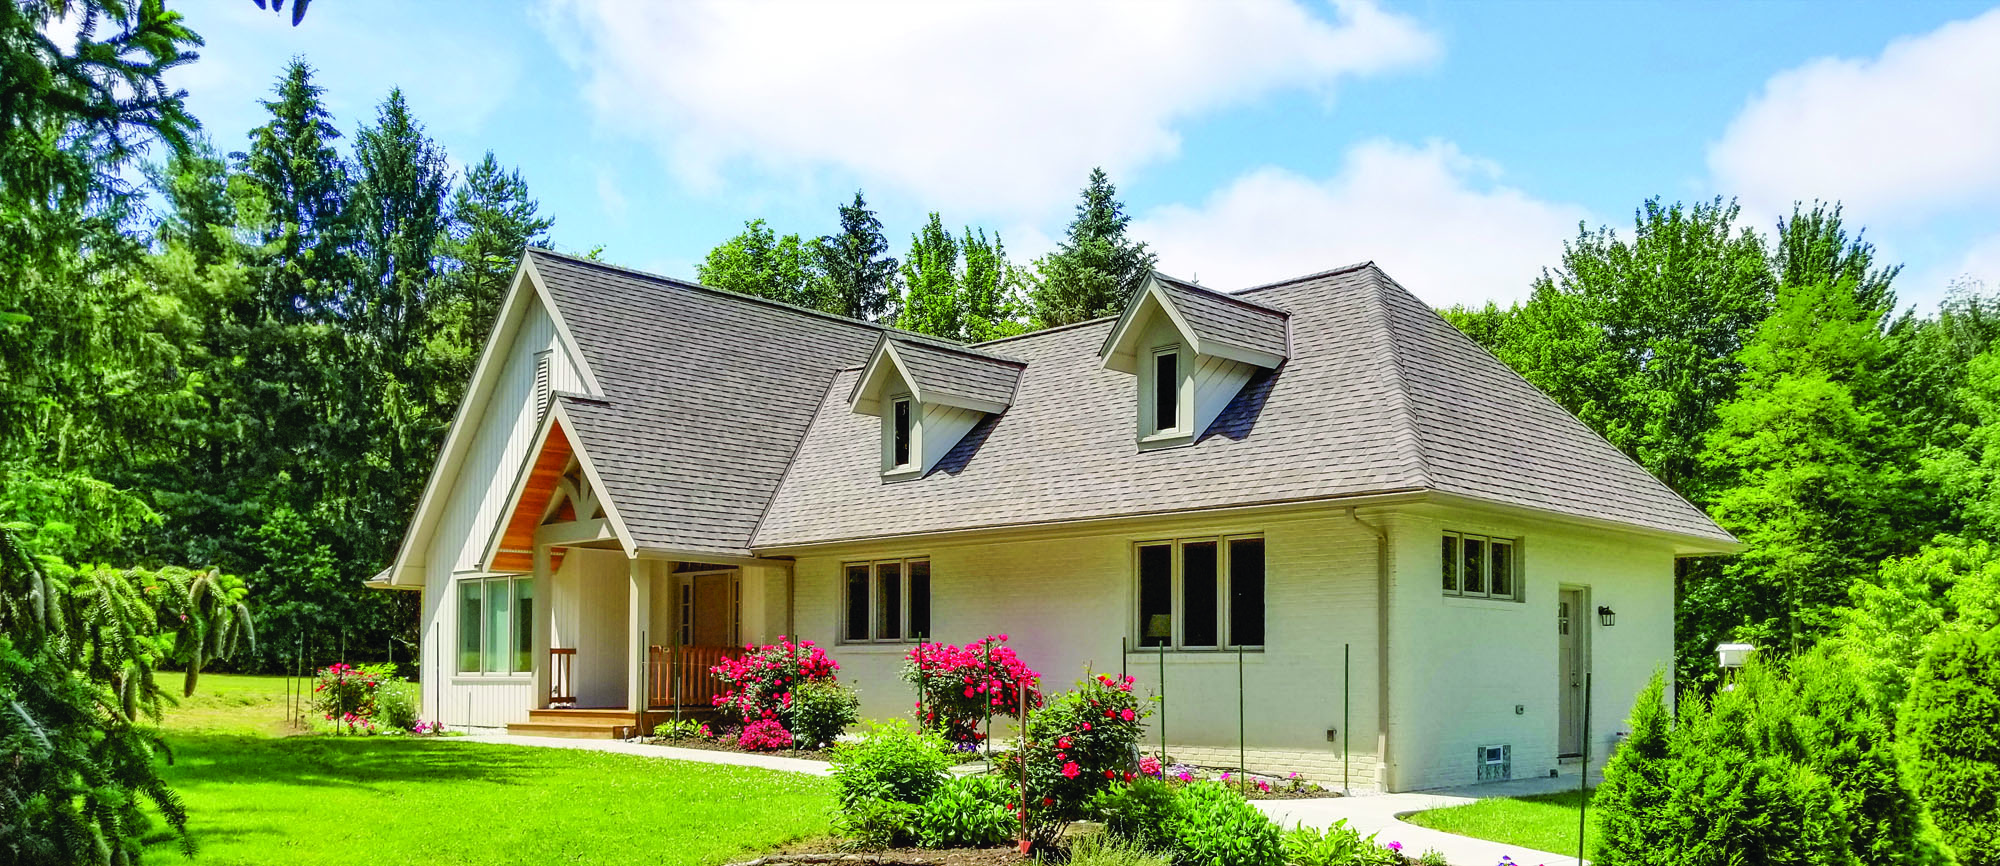 A steeper roof adds space and style; the pretty entry has a practical overhang.